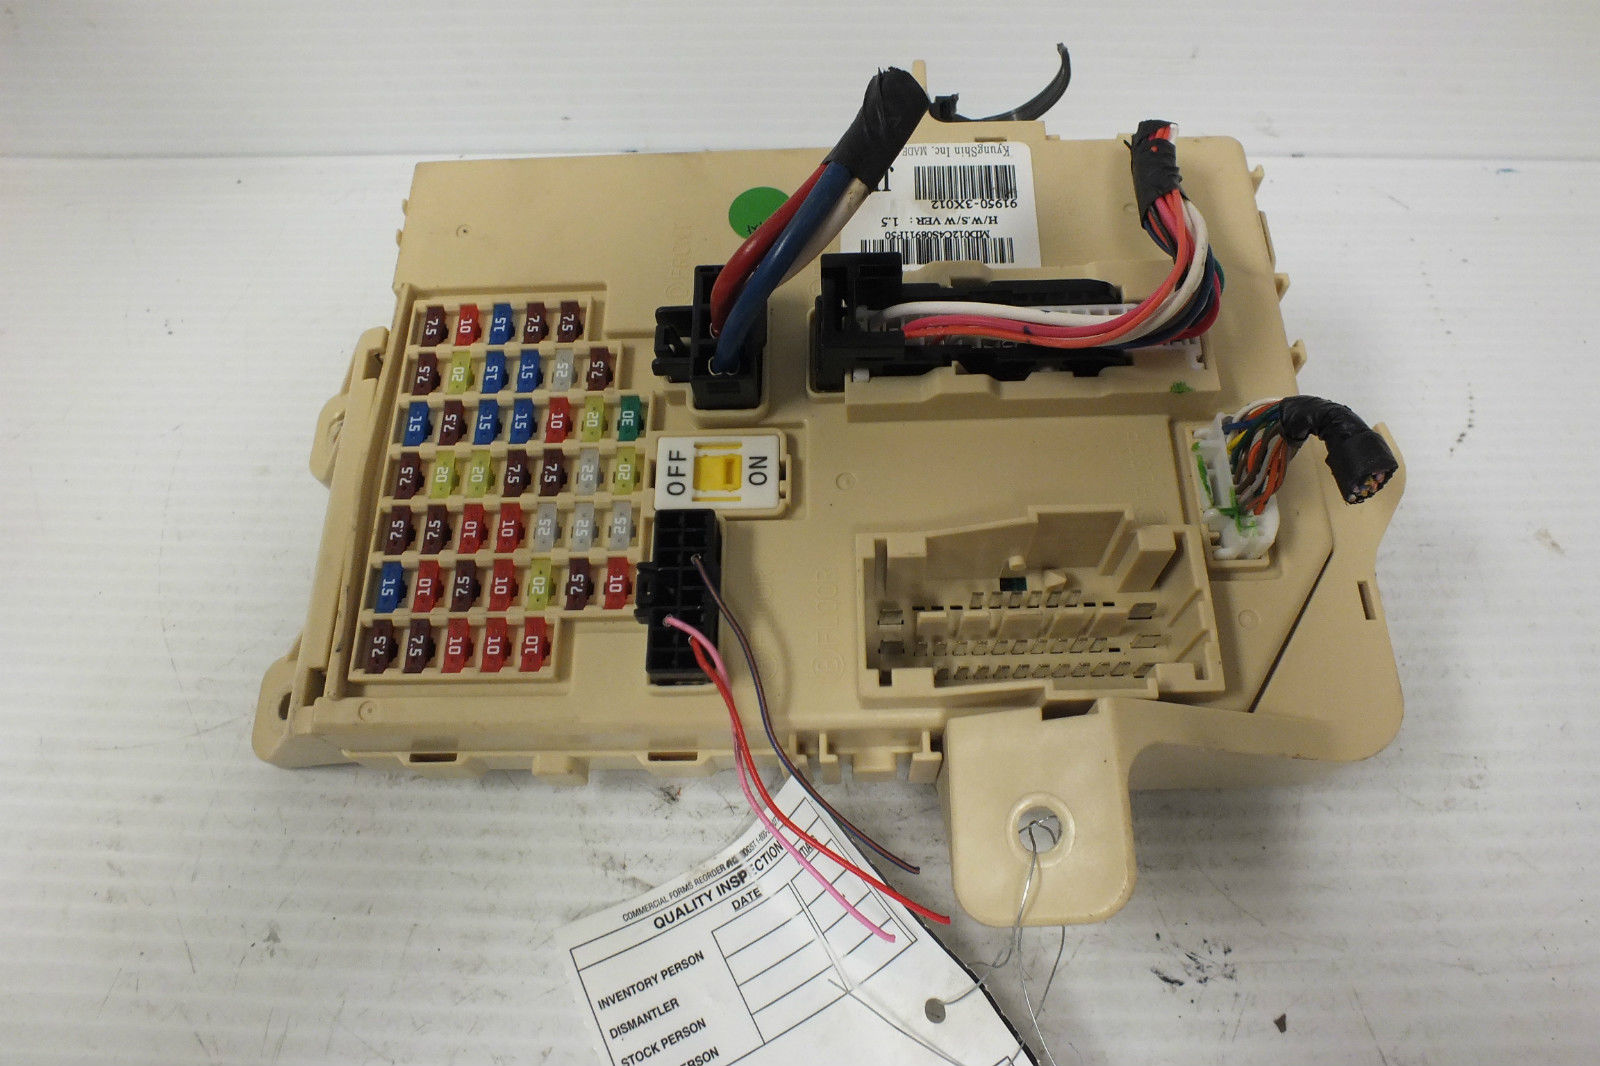 a4a1a42e 895a 4c9a 8da1 d1b911474d15 11 12 13 2013 hyundai elantra 1 8l junction relay fuse box 91950 2002 Hyundai Elantra Fuse Box Diagram at fashall.co